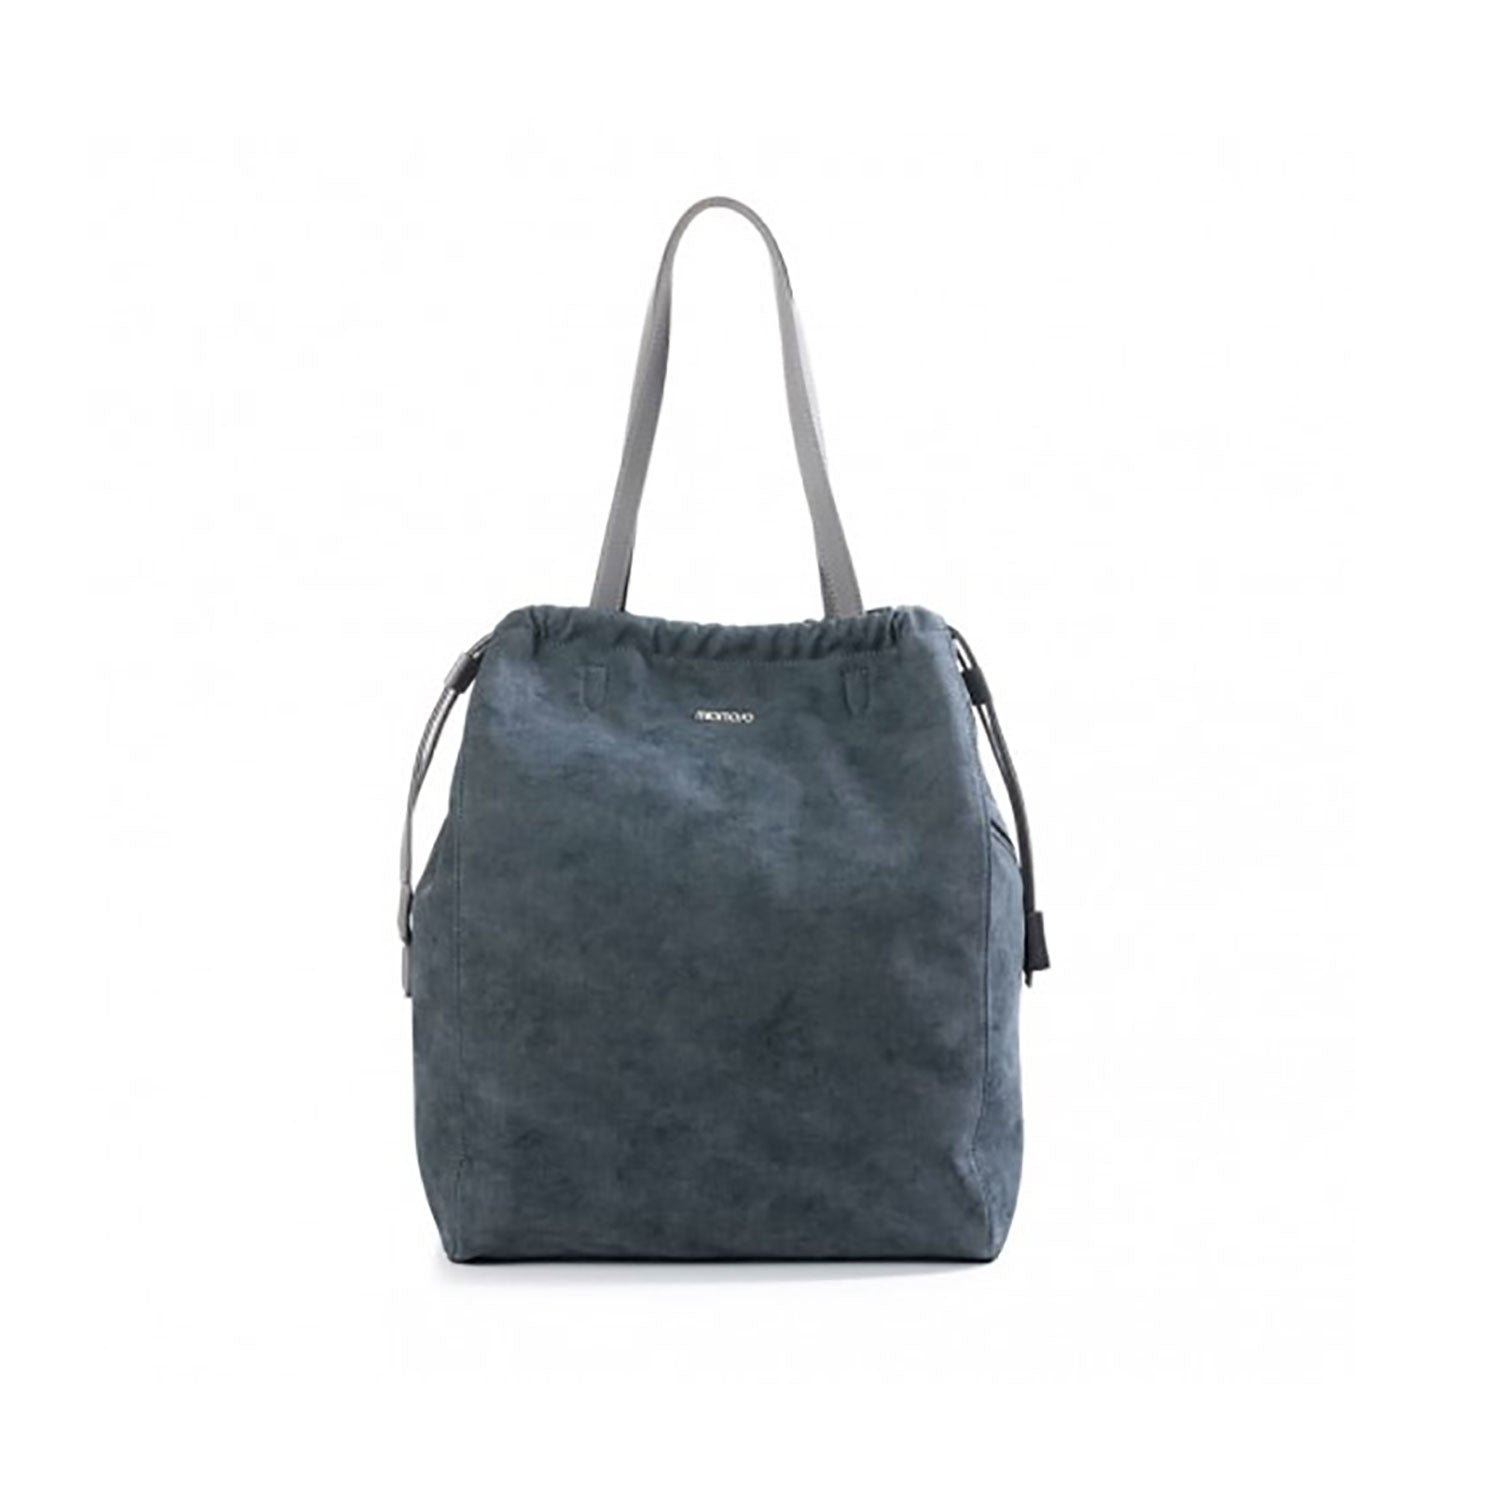 La Monnalisa Shopper Bag